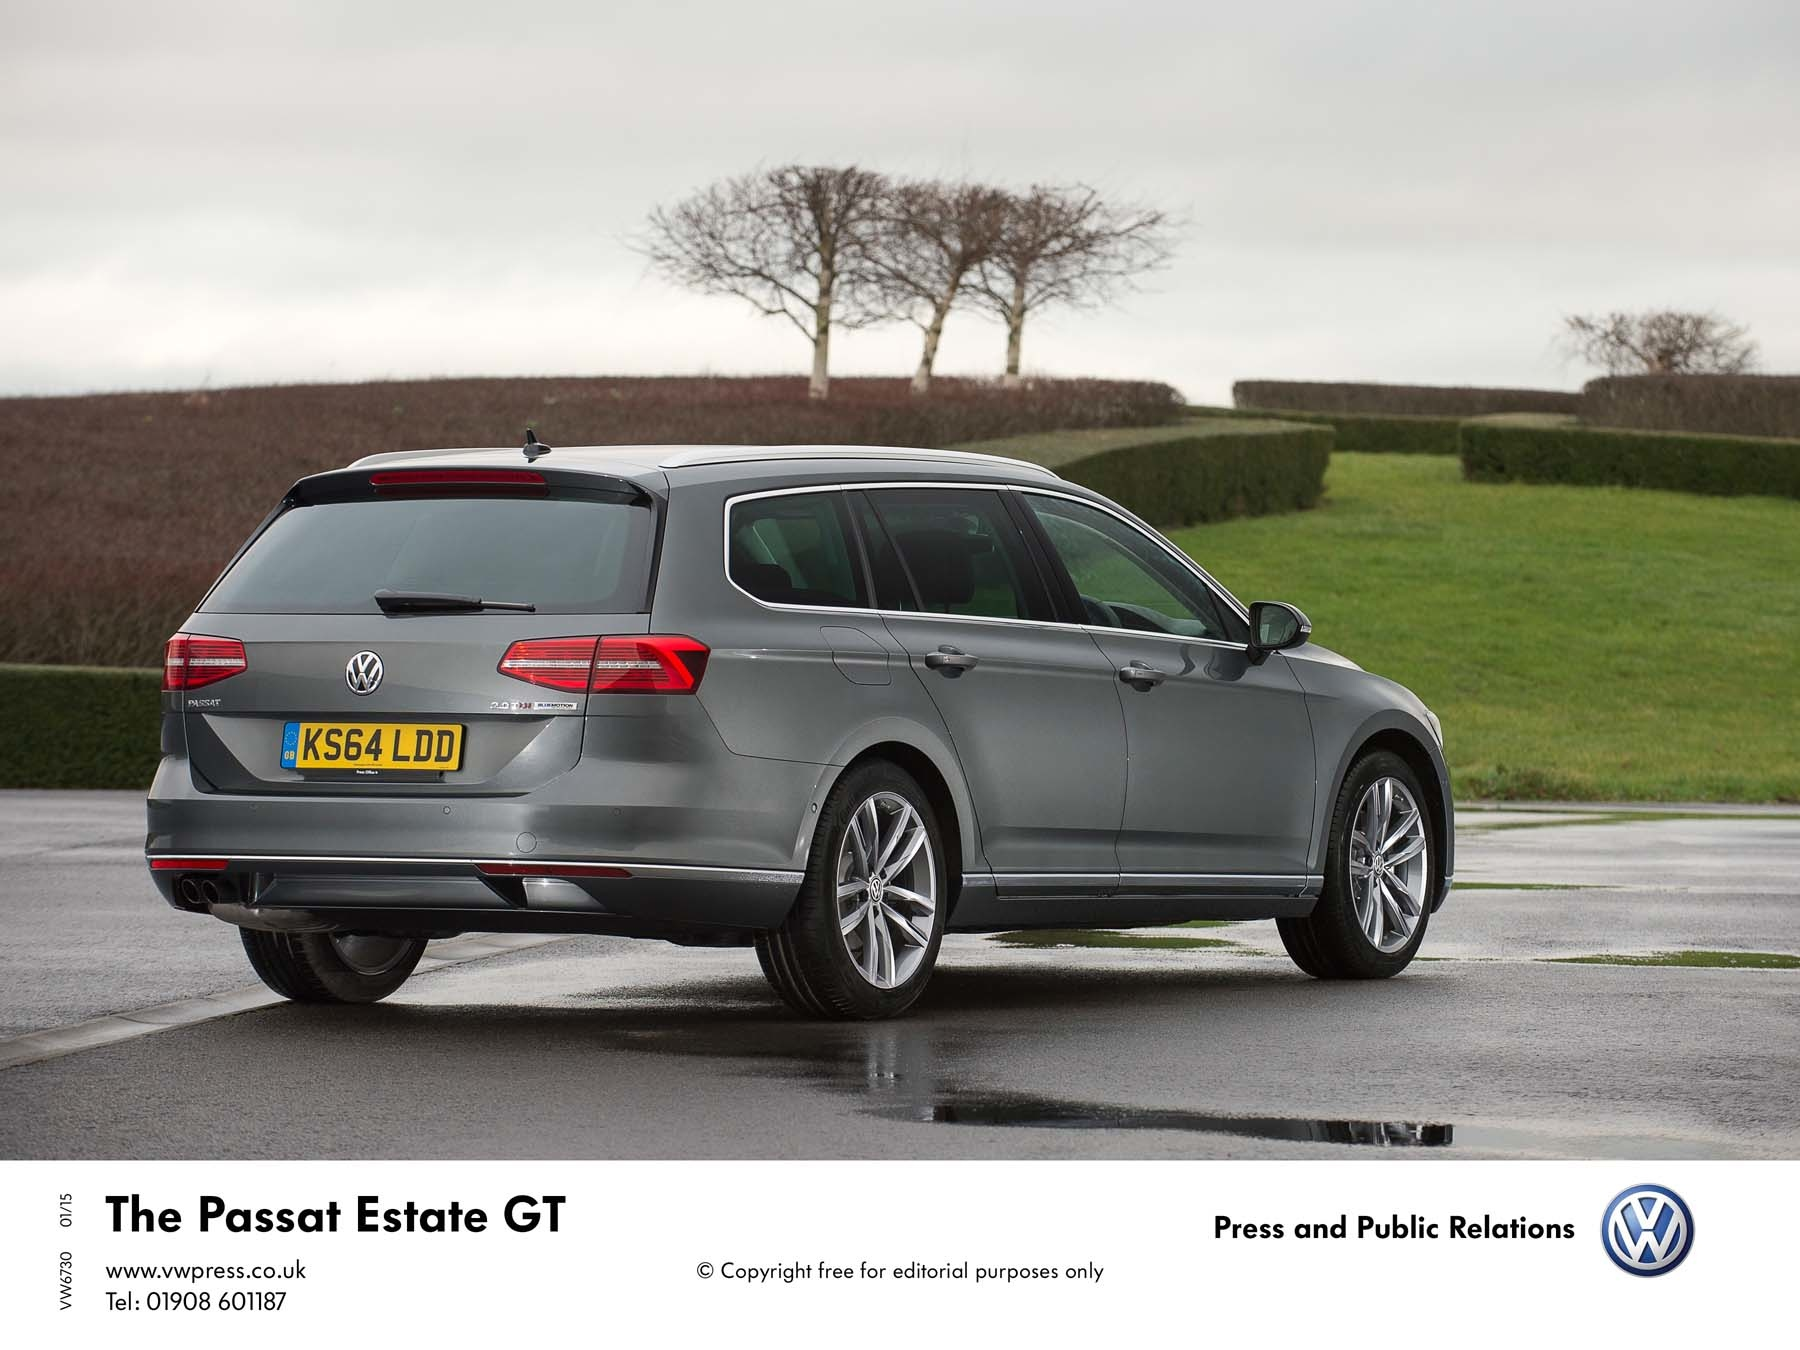 New VW Passat range road test report and review - Wheel World Reviews